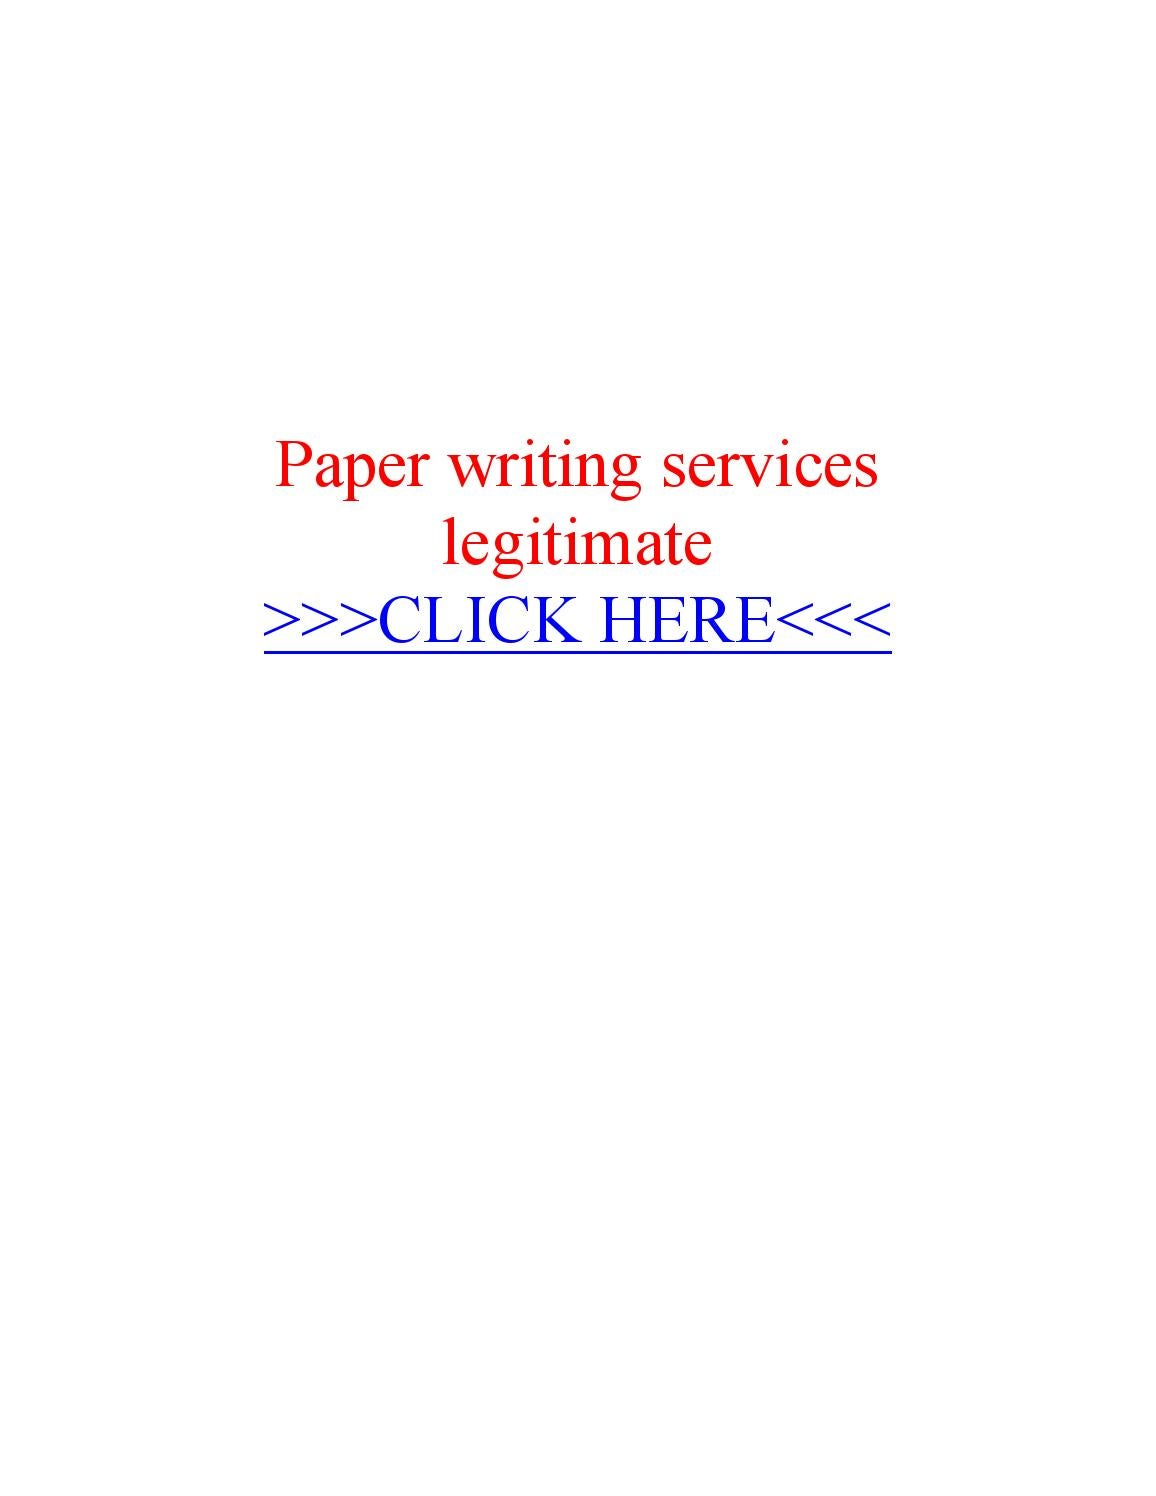 Legit paper writing services